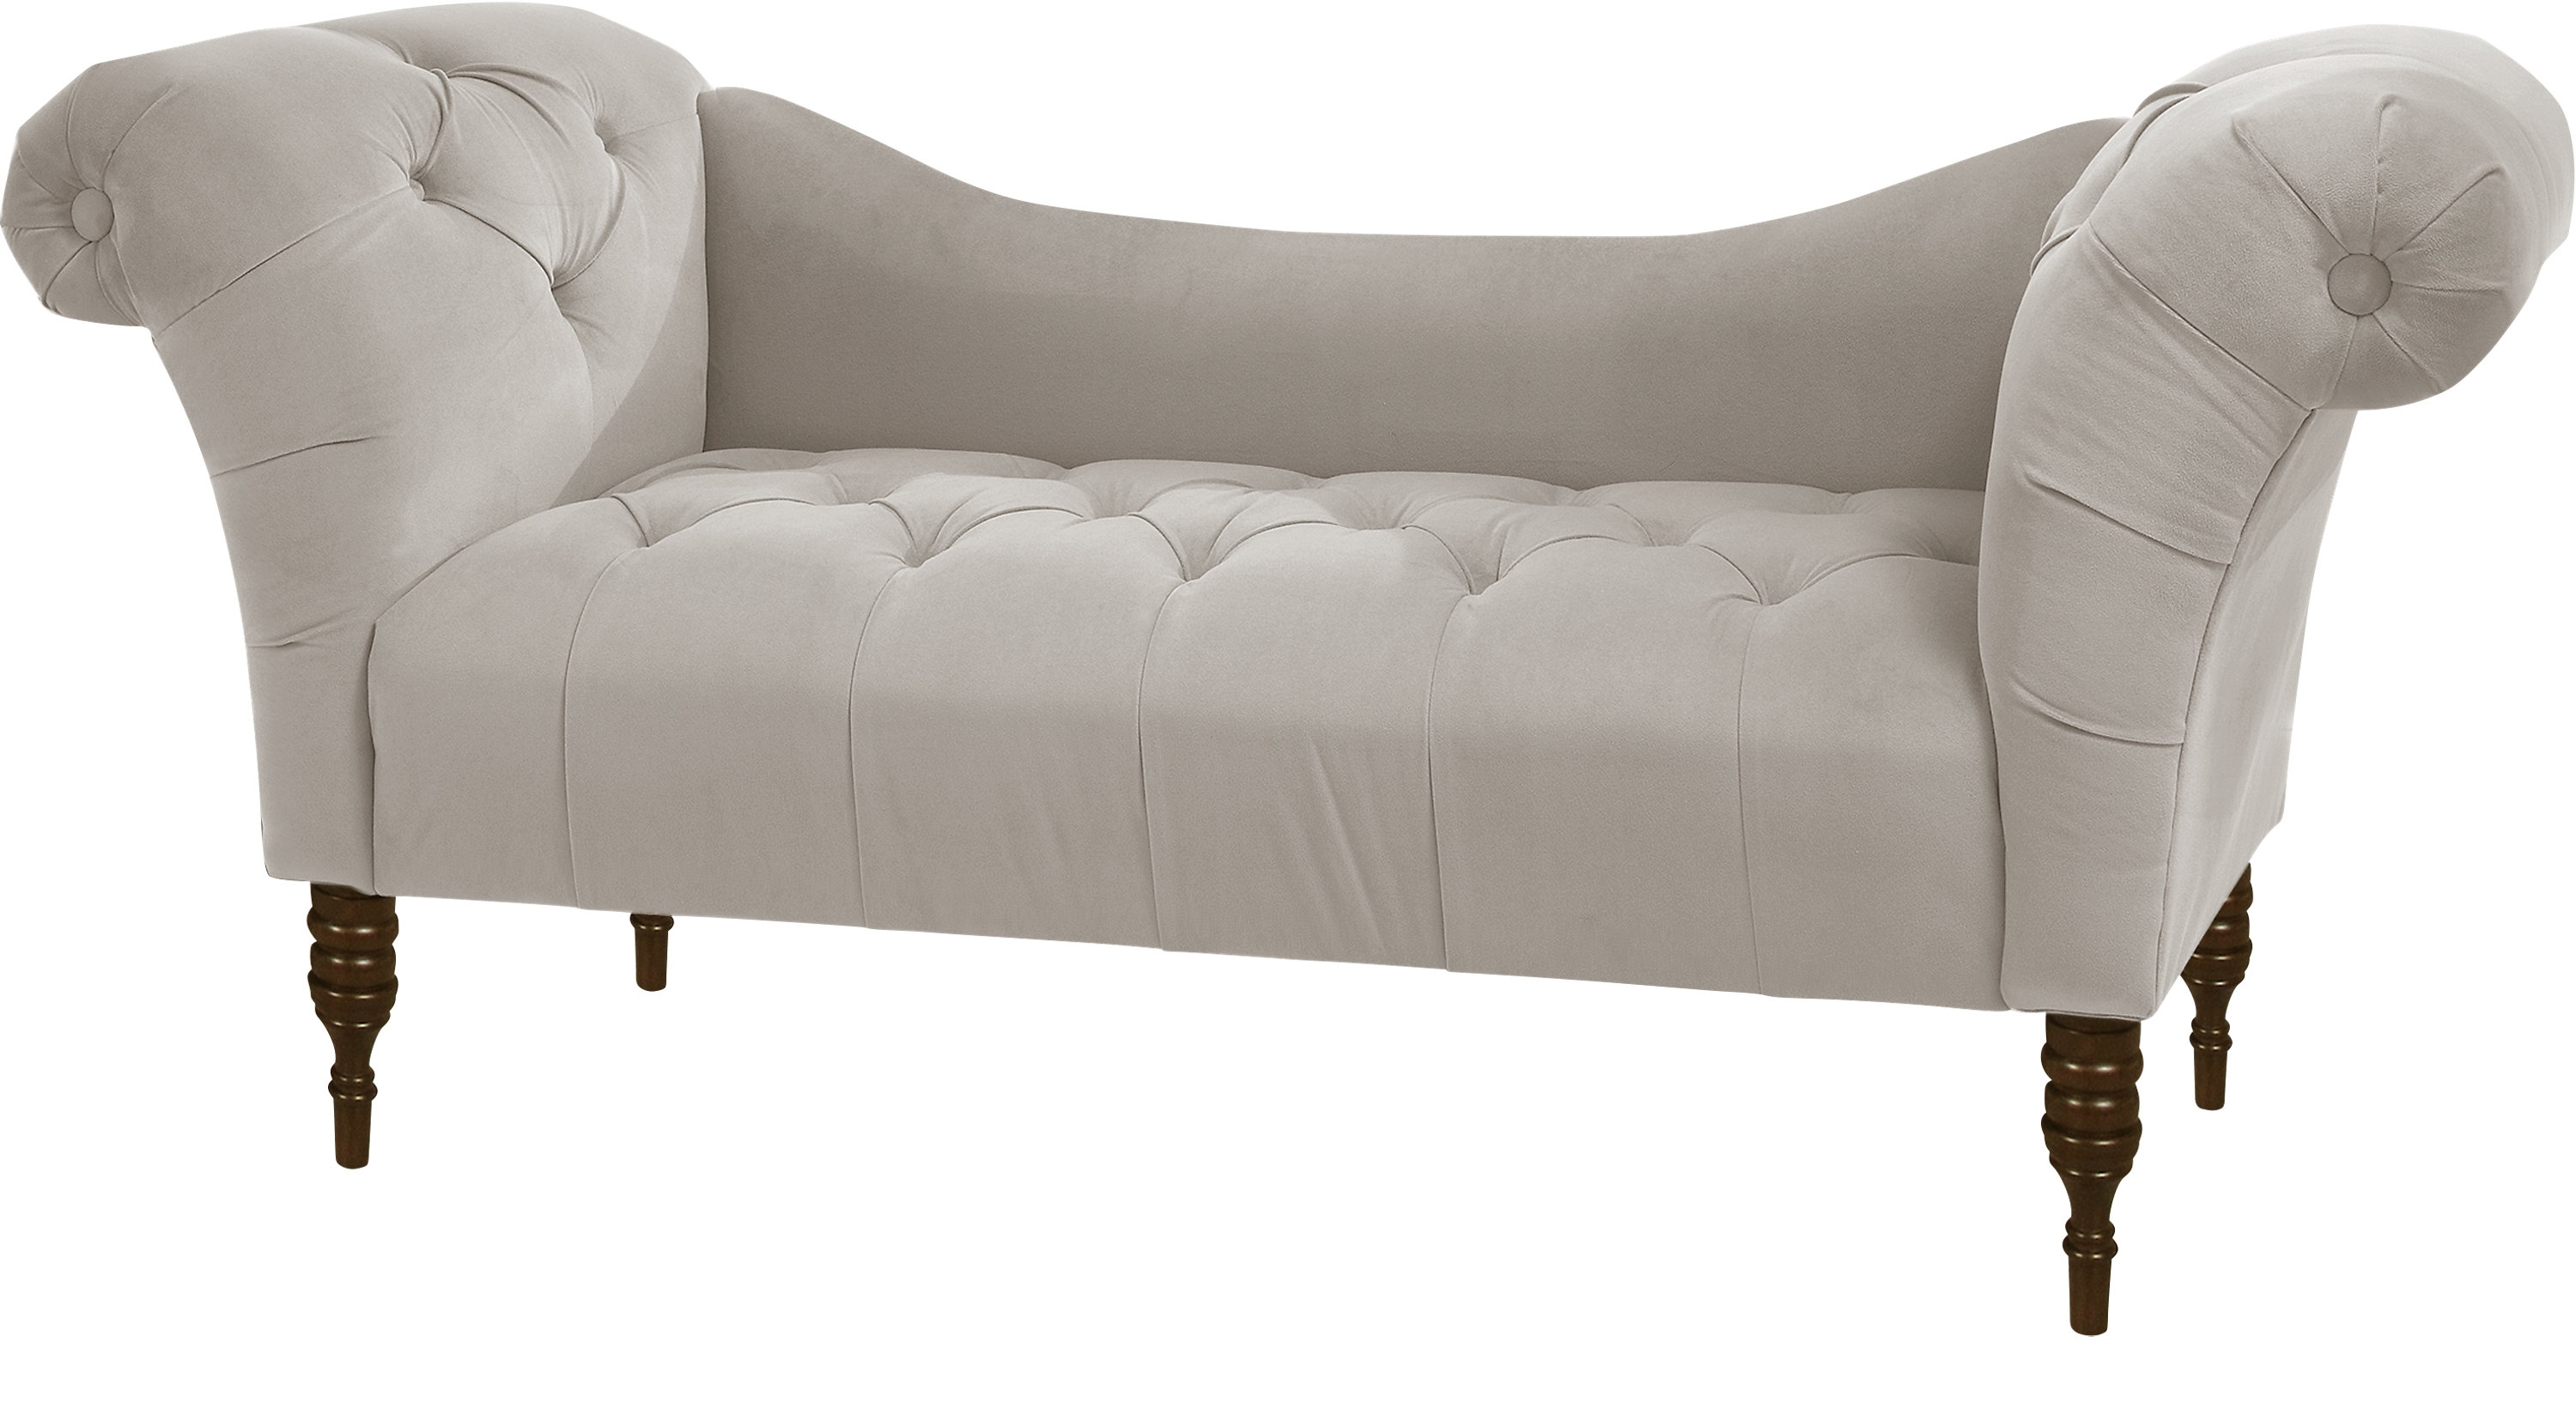 Grey Chaises In Most Recently Released Grey Chaises – Grey Chaise Lounge Sofas (View 3 of 15)